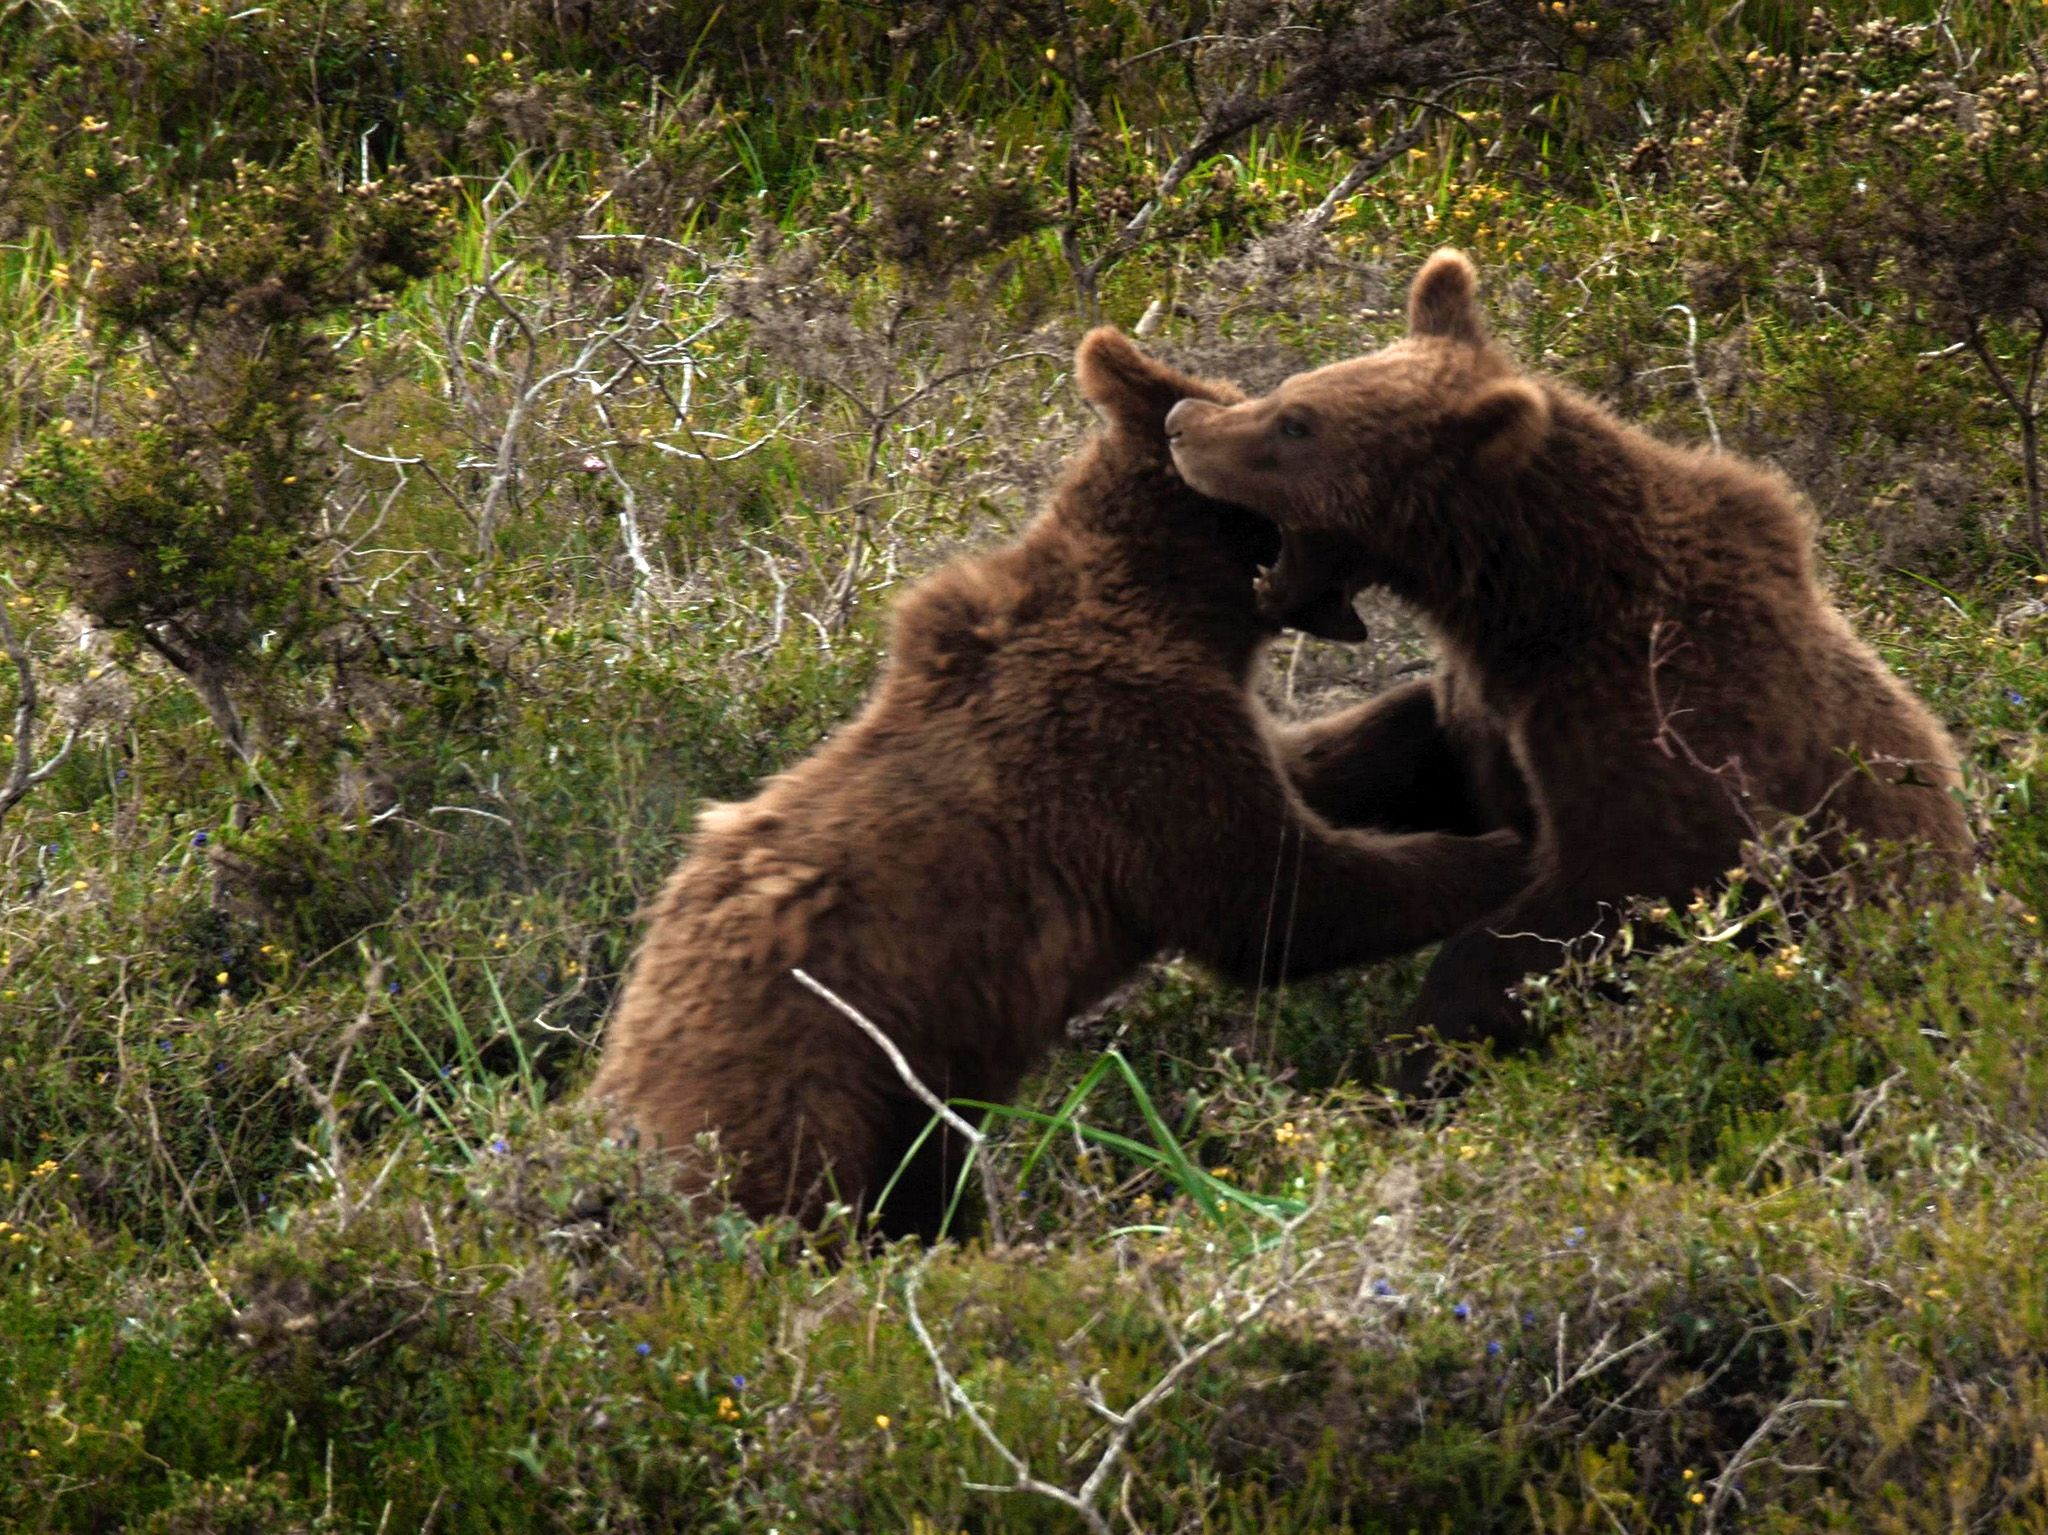 Two brown bears fighting. This image is from Wild Hunters. [Photo of the day - May 2020]